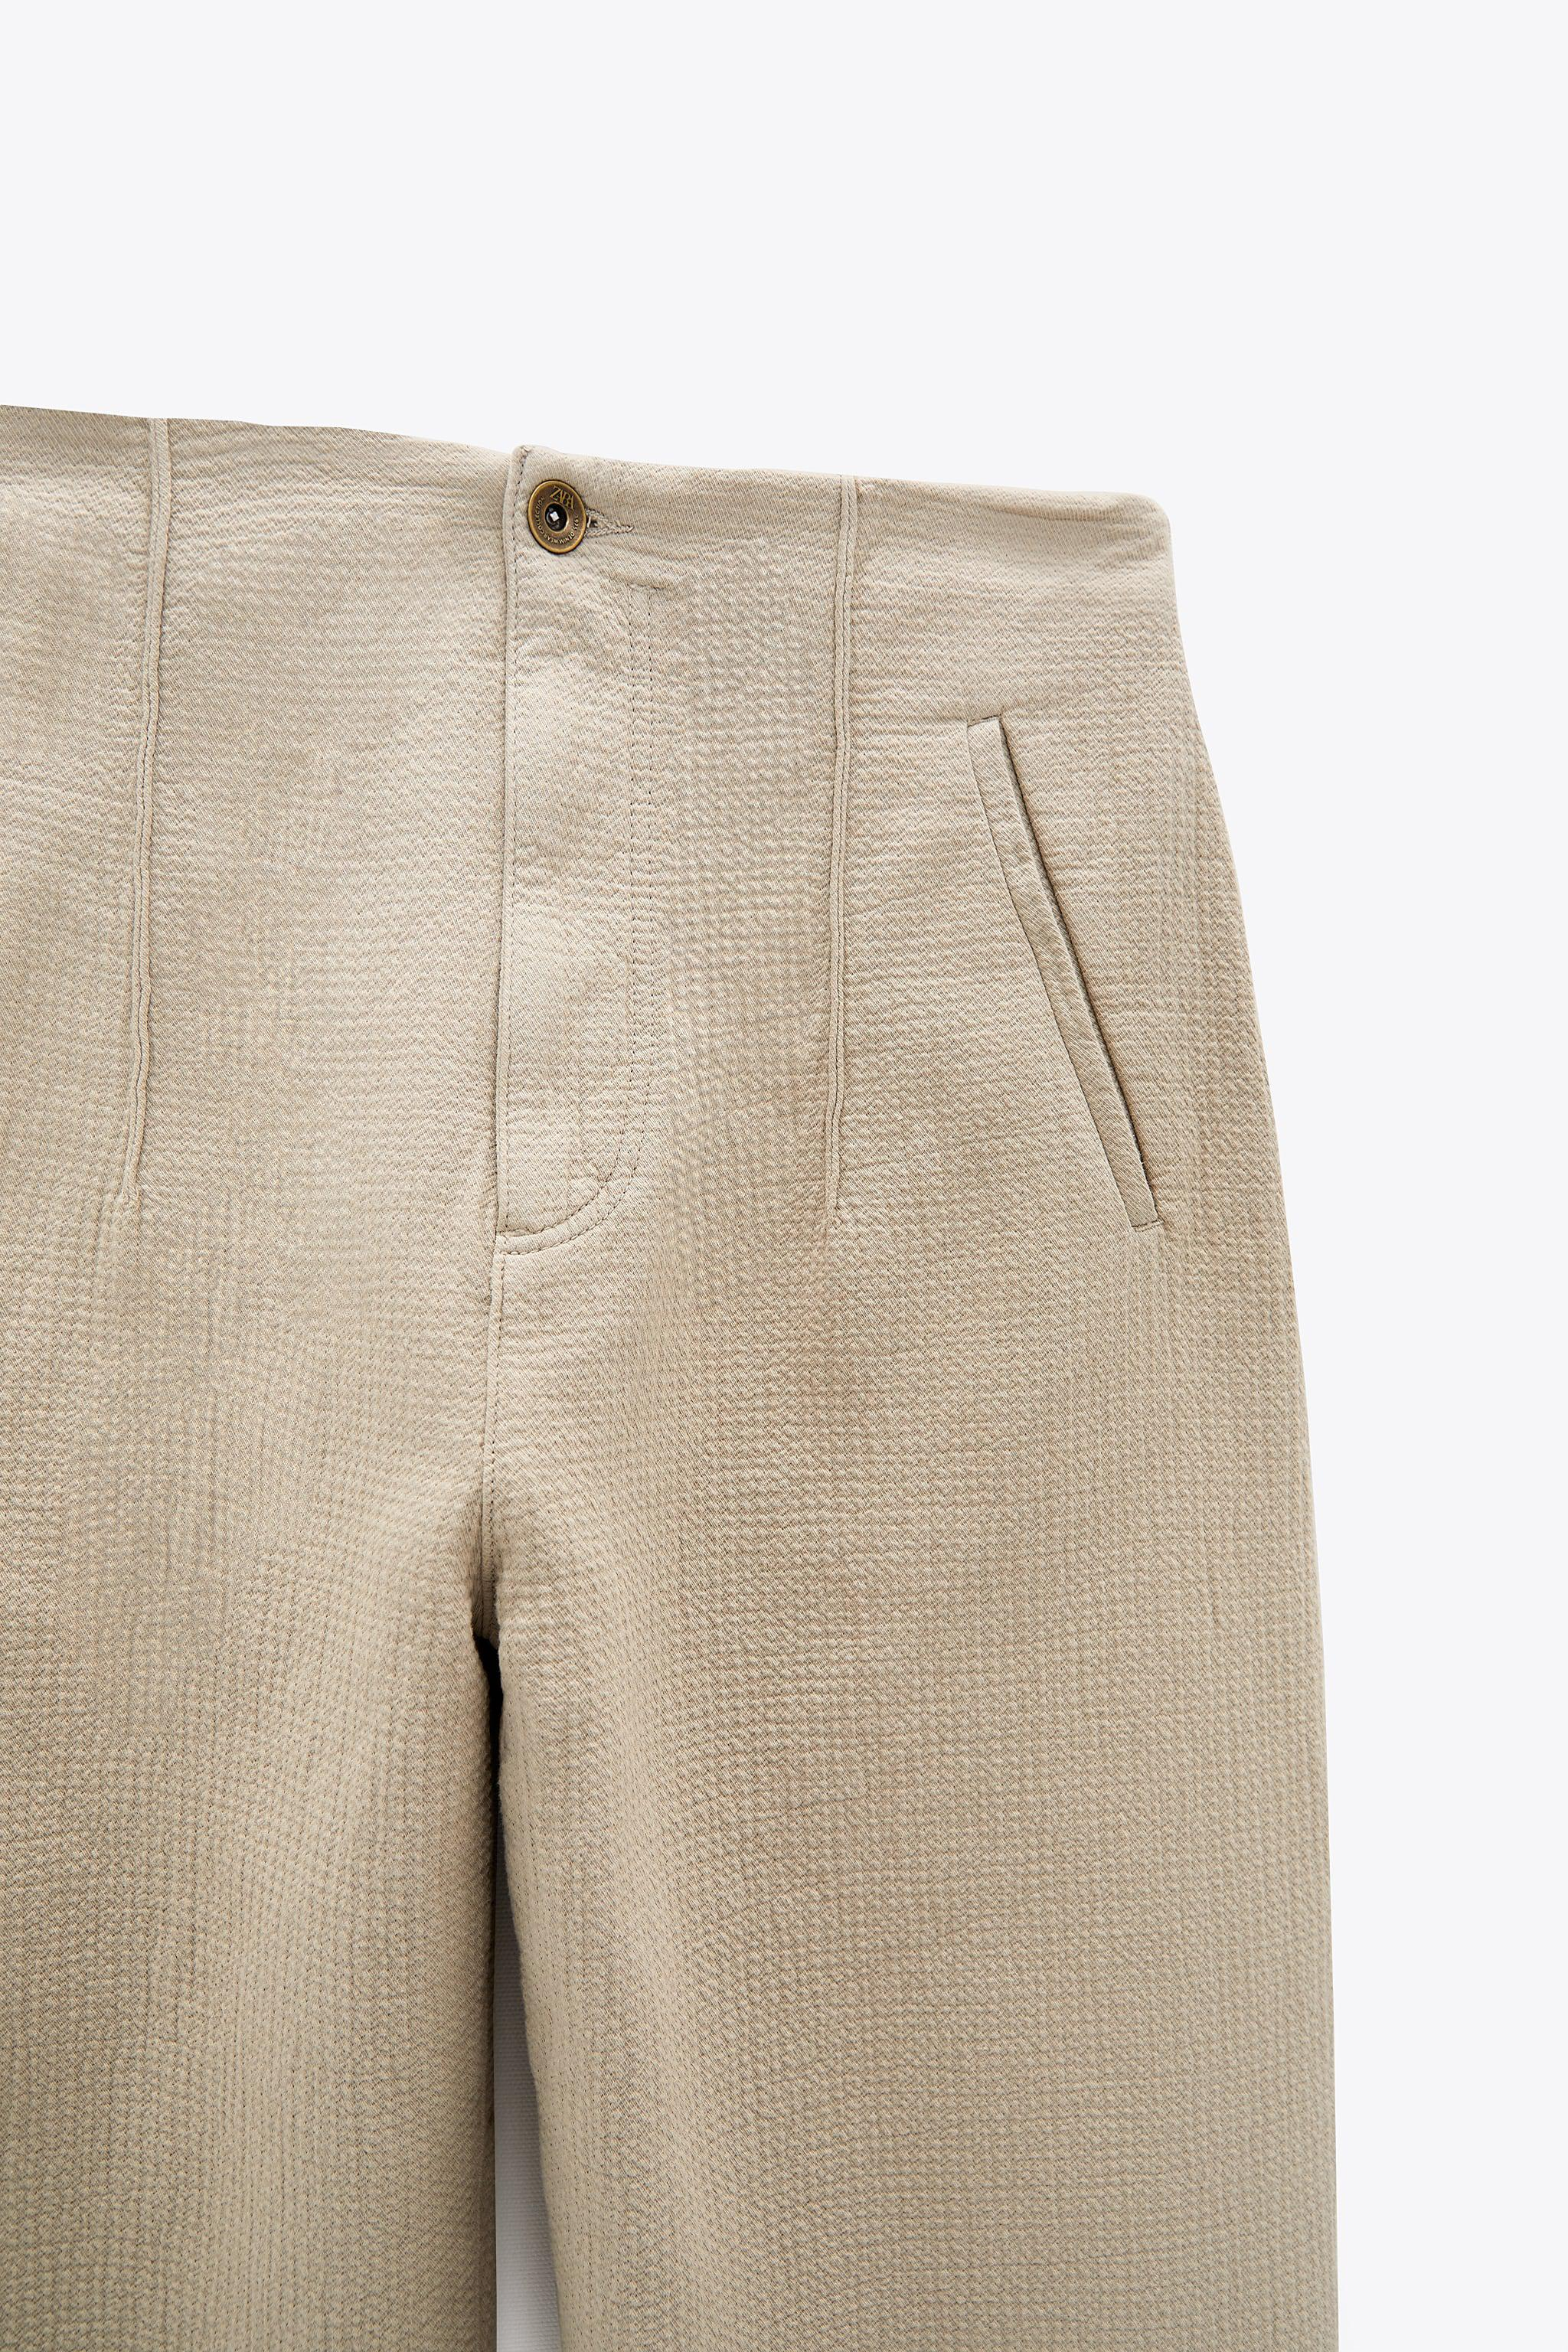 SLOUCHY SOFT PANTS 7